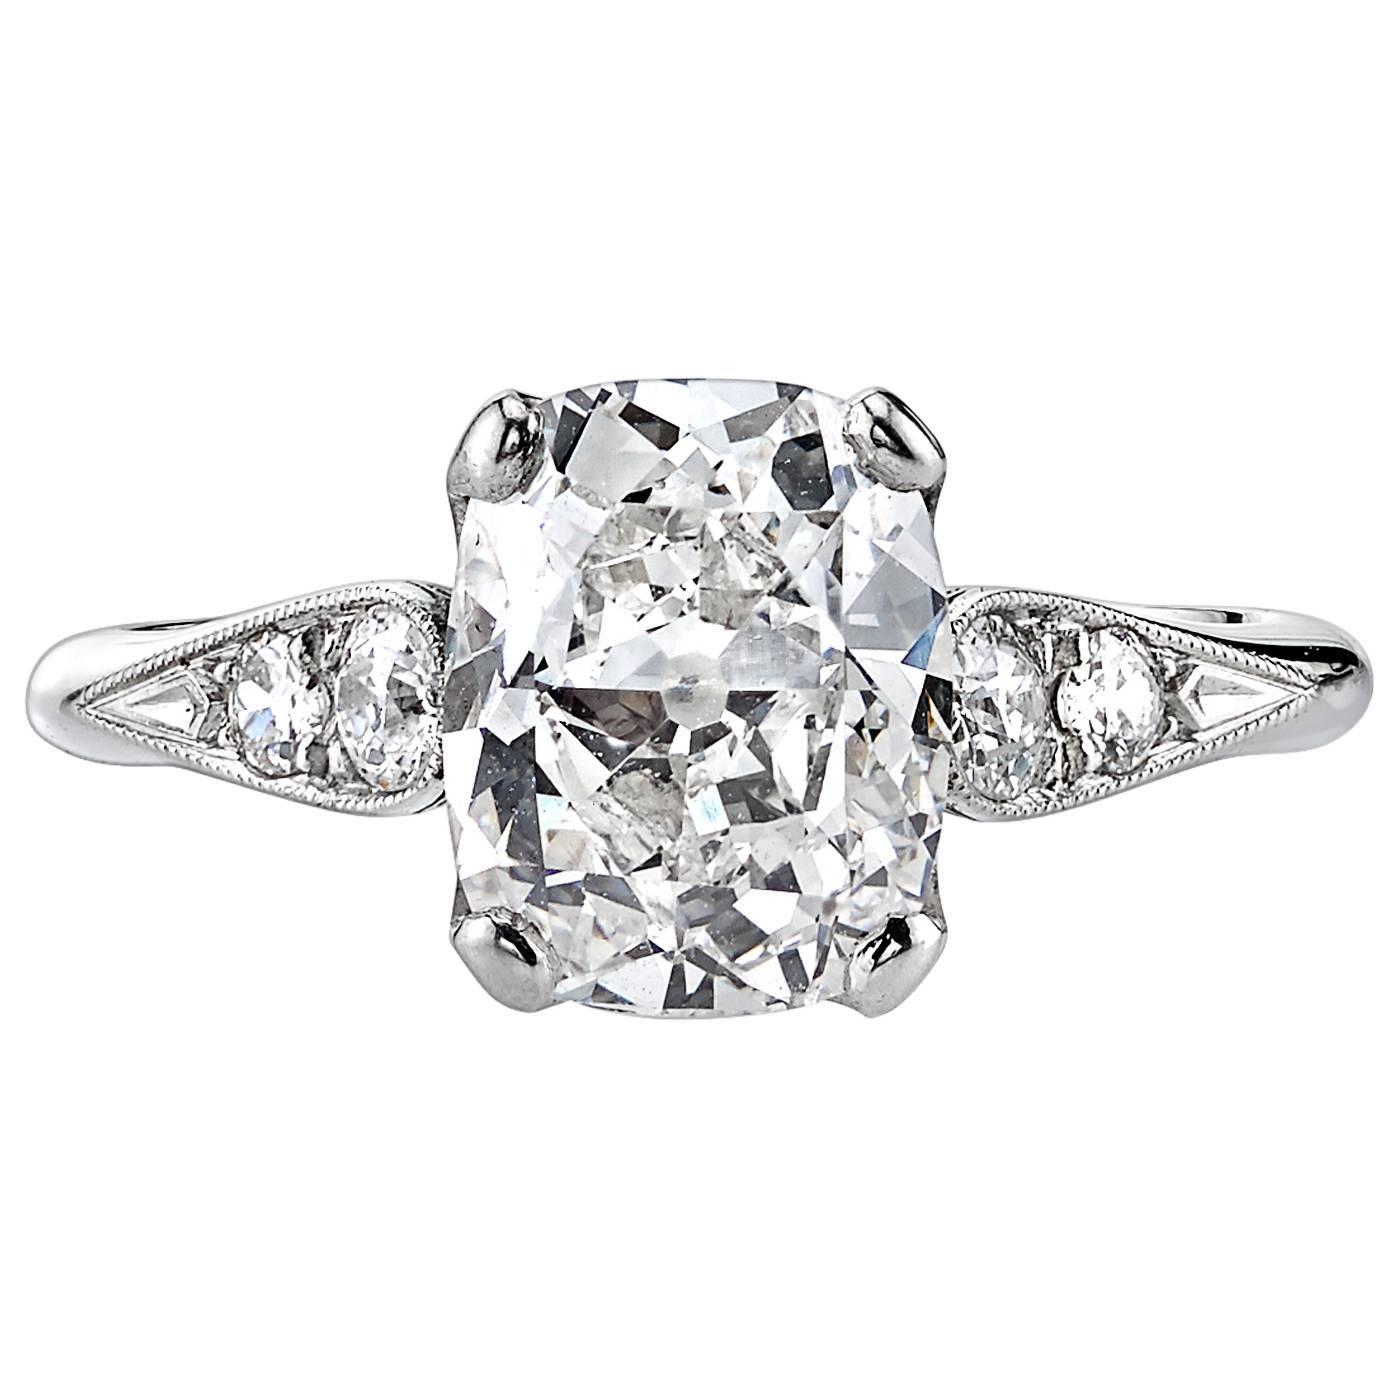 2 33 Carat Cushion Cut Diamond Platinum Engagement Ring